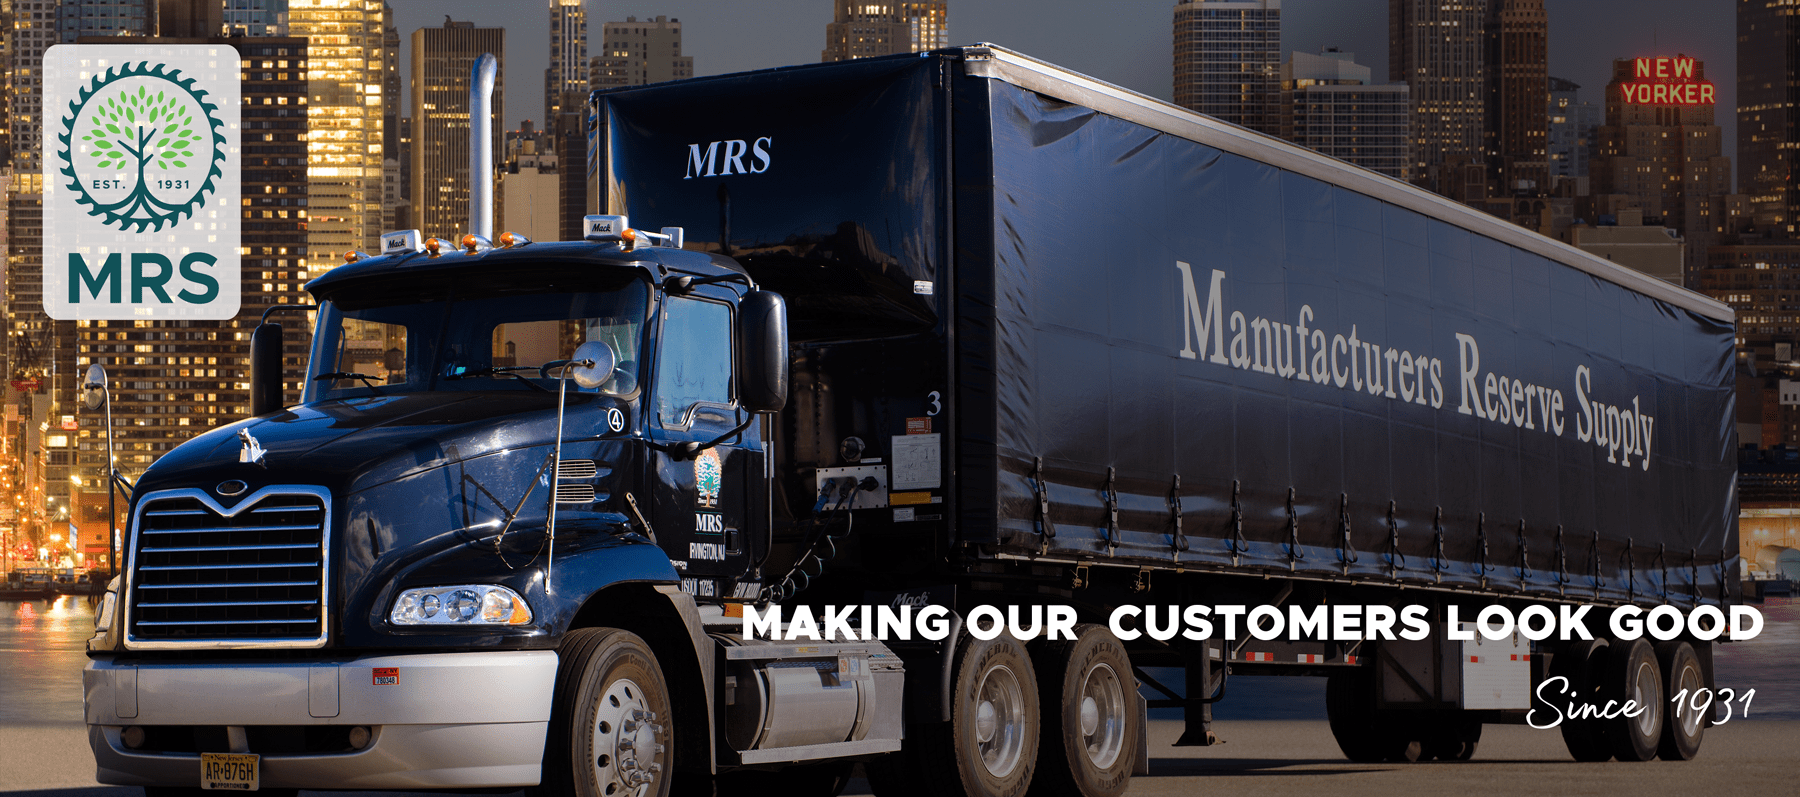 MRS - Manufacturers Reserve Supply